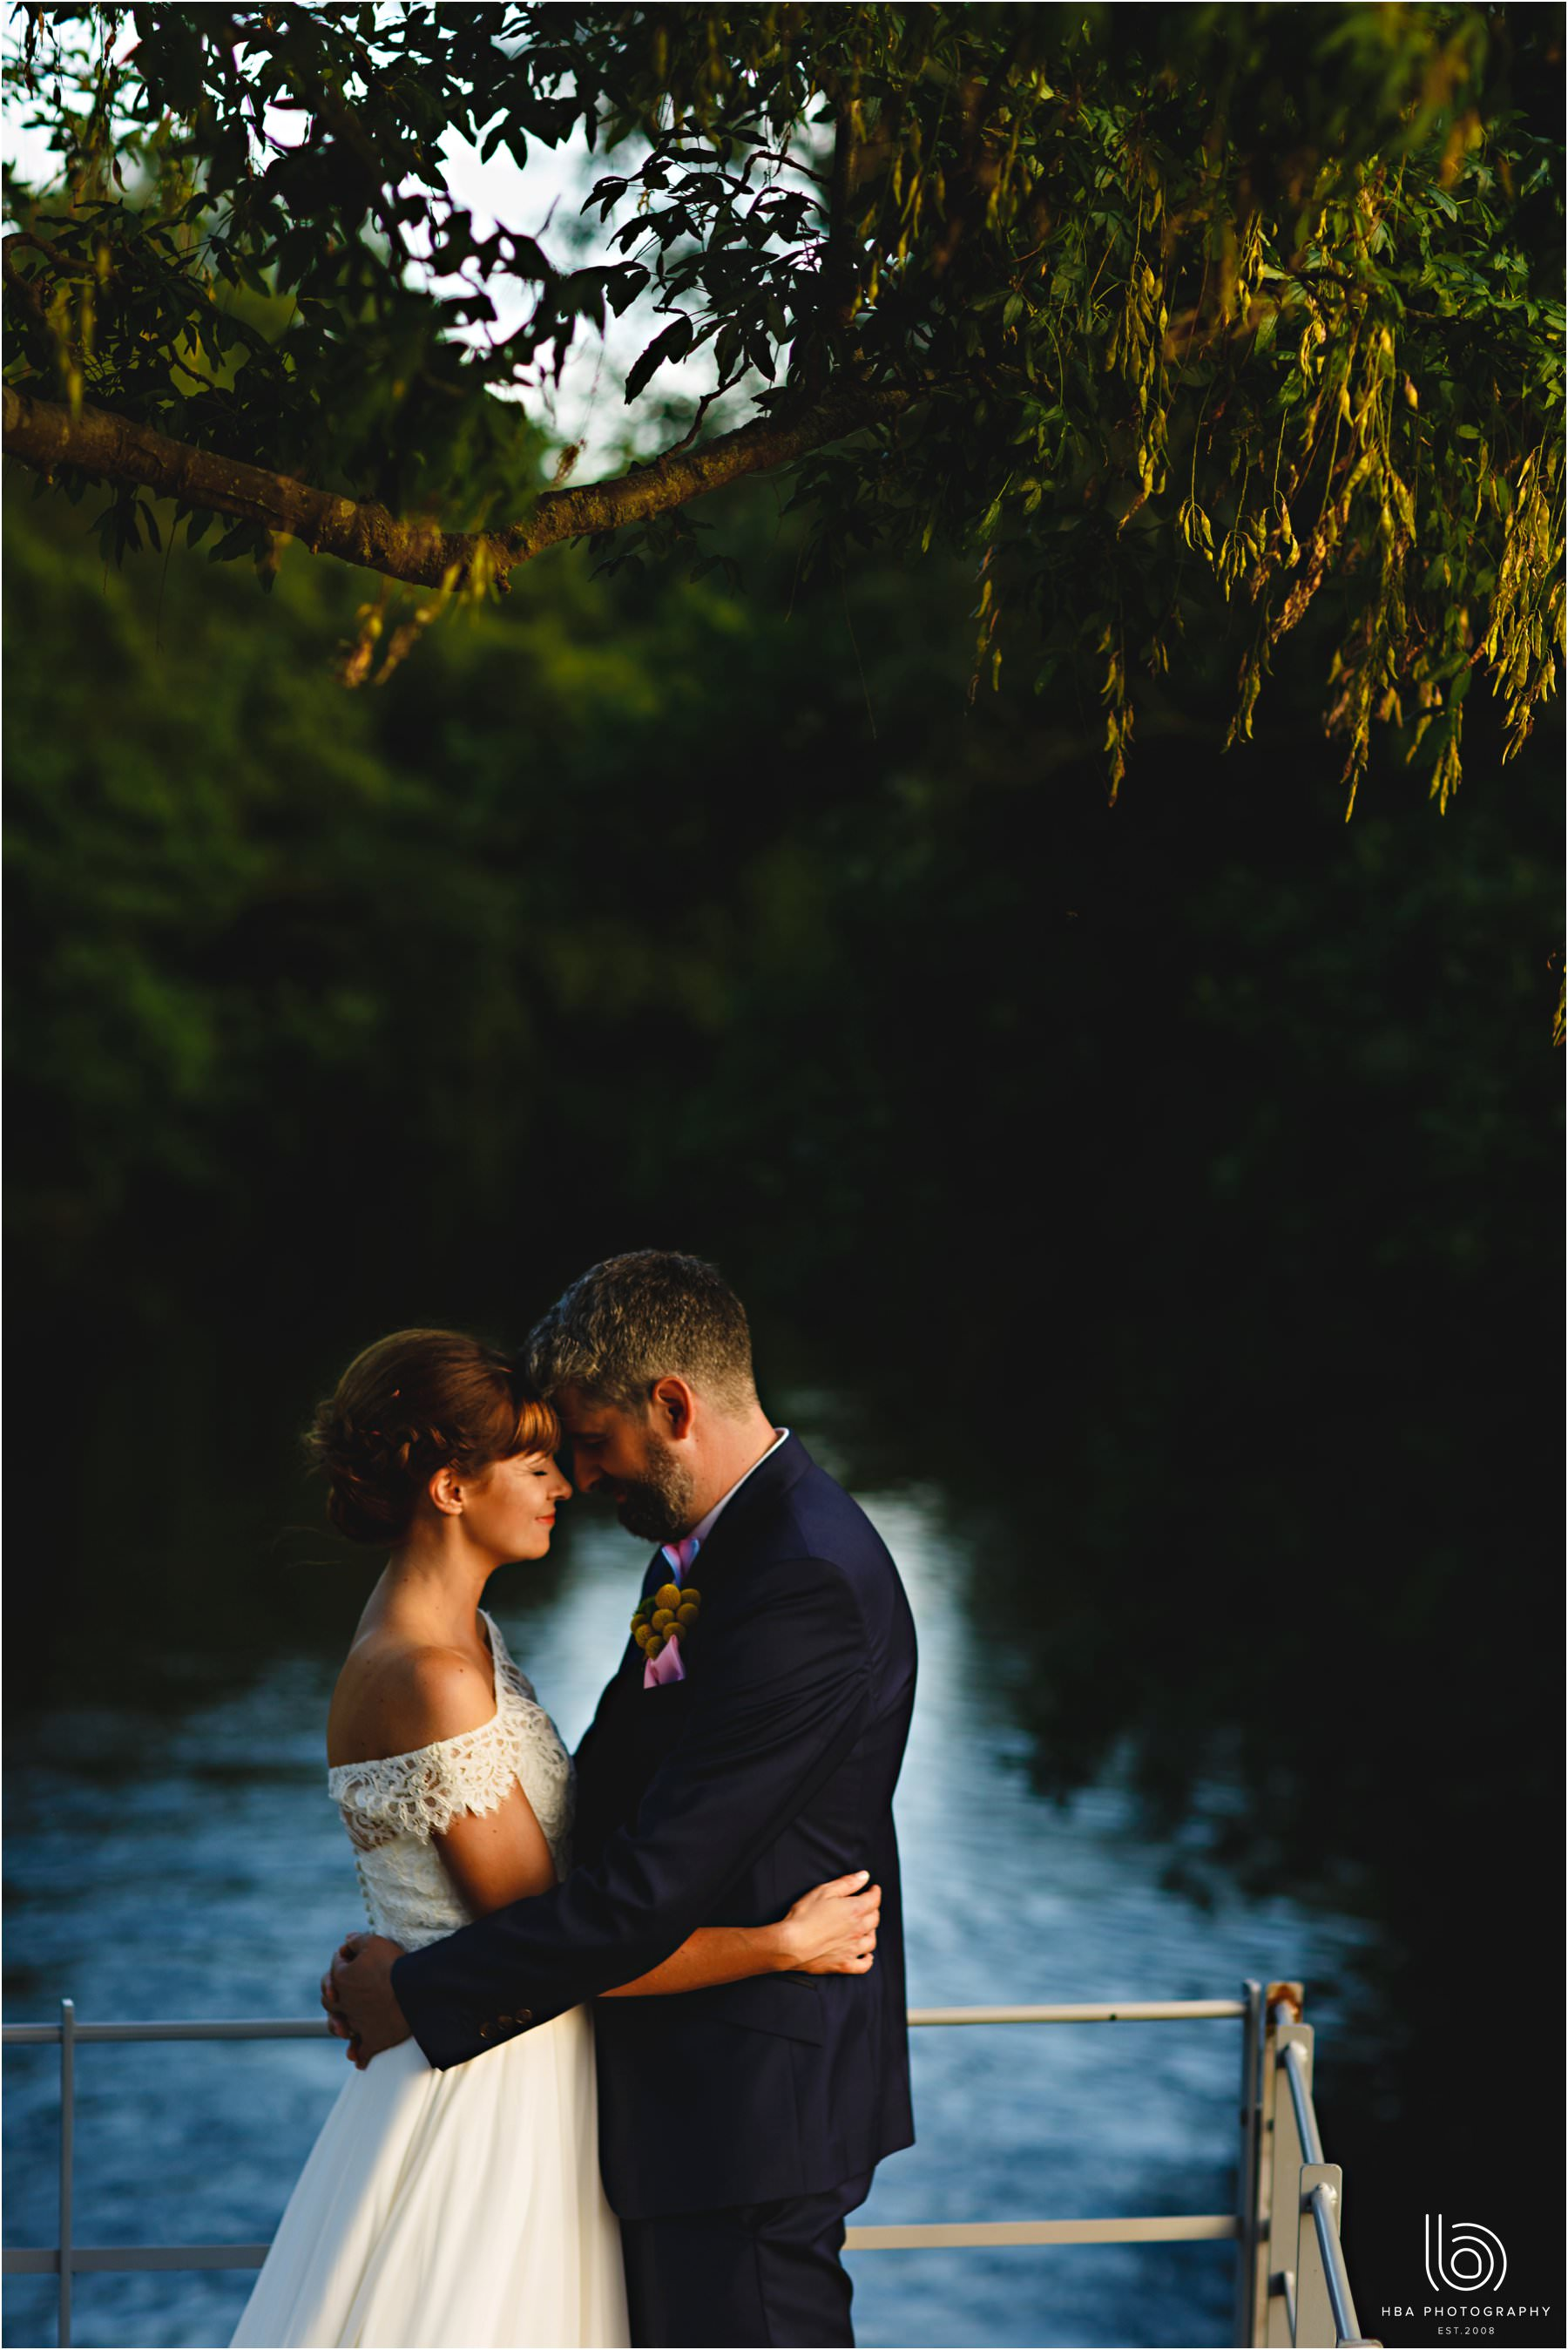 the bride and groom by the river